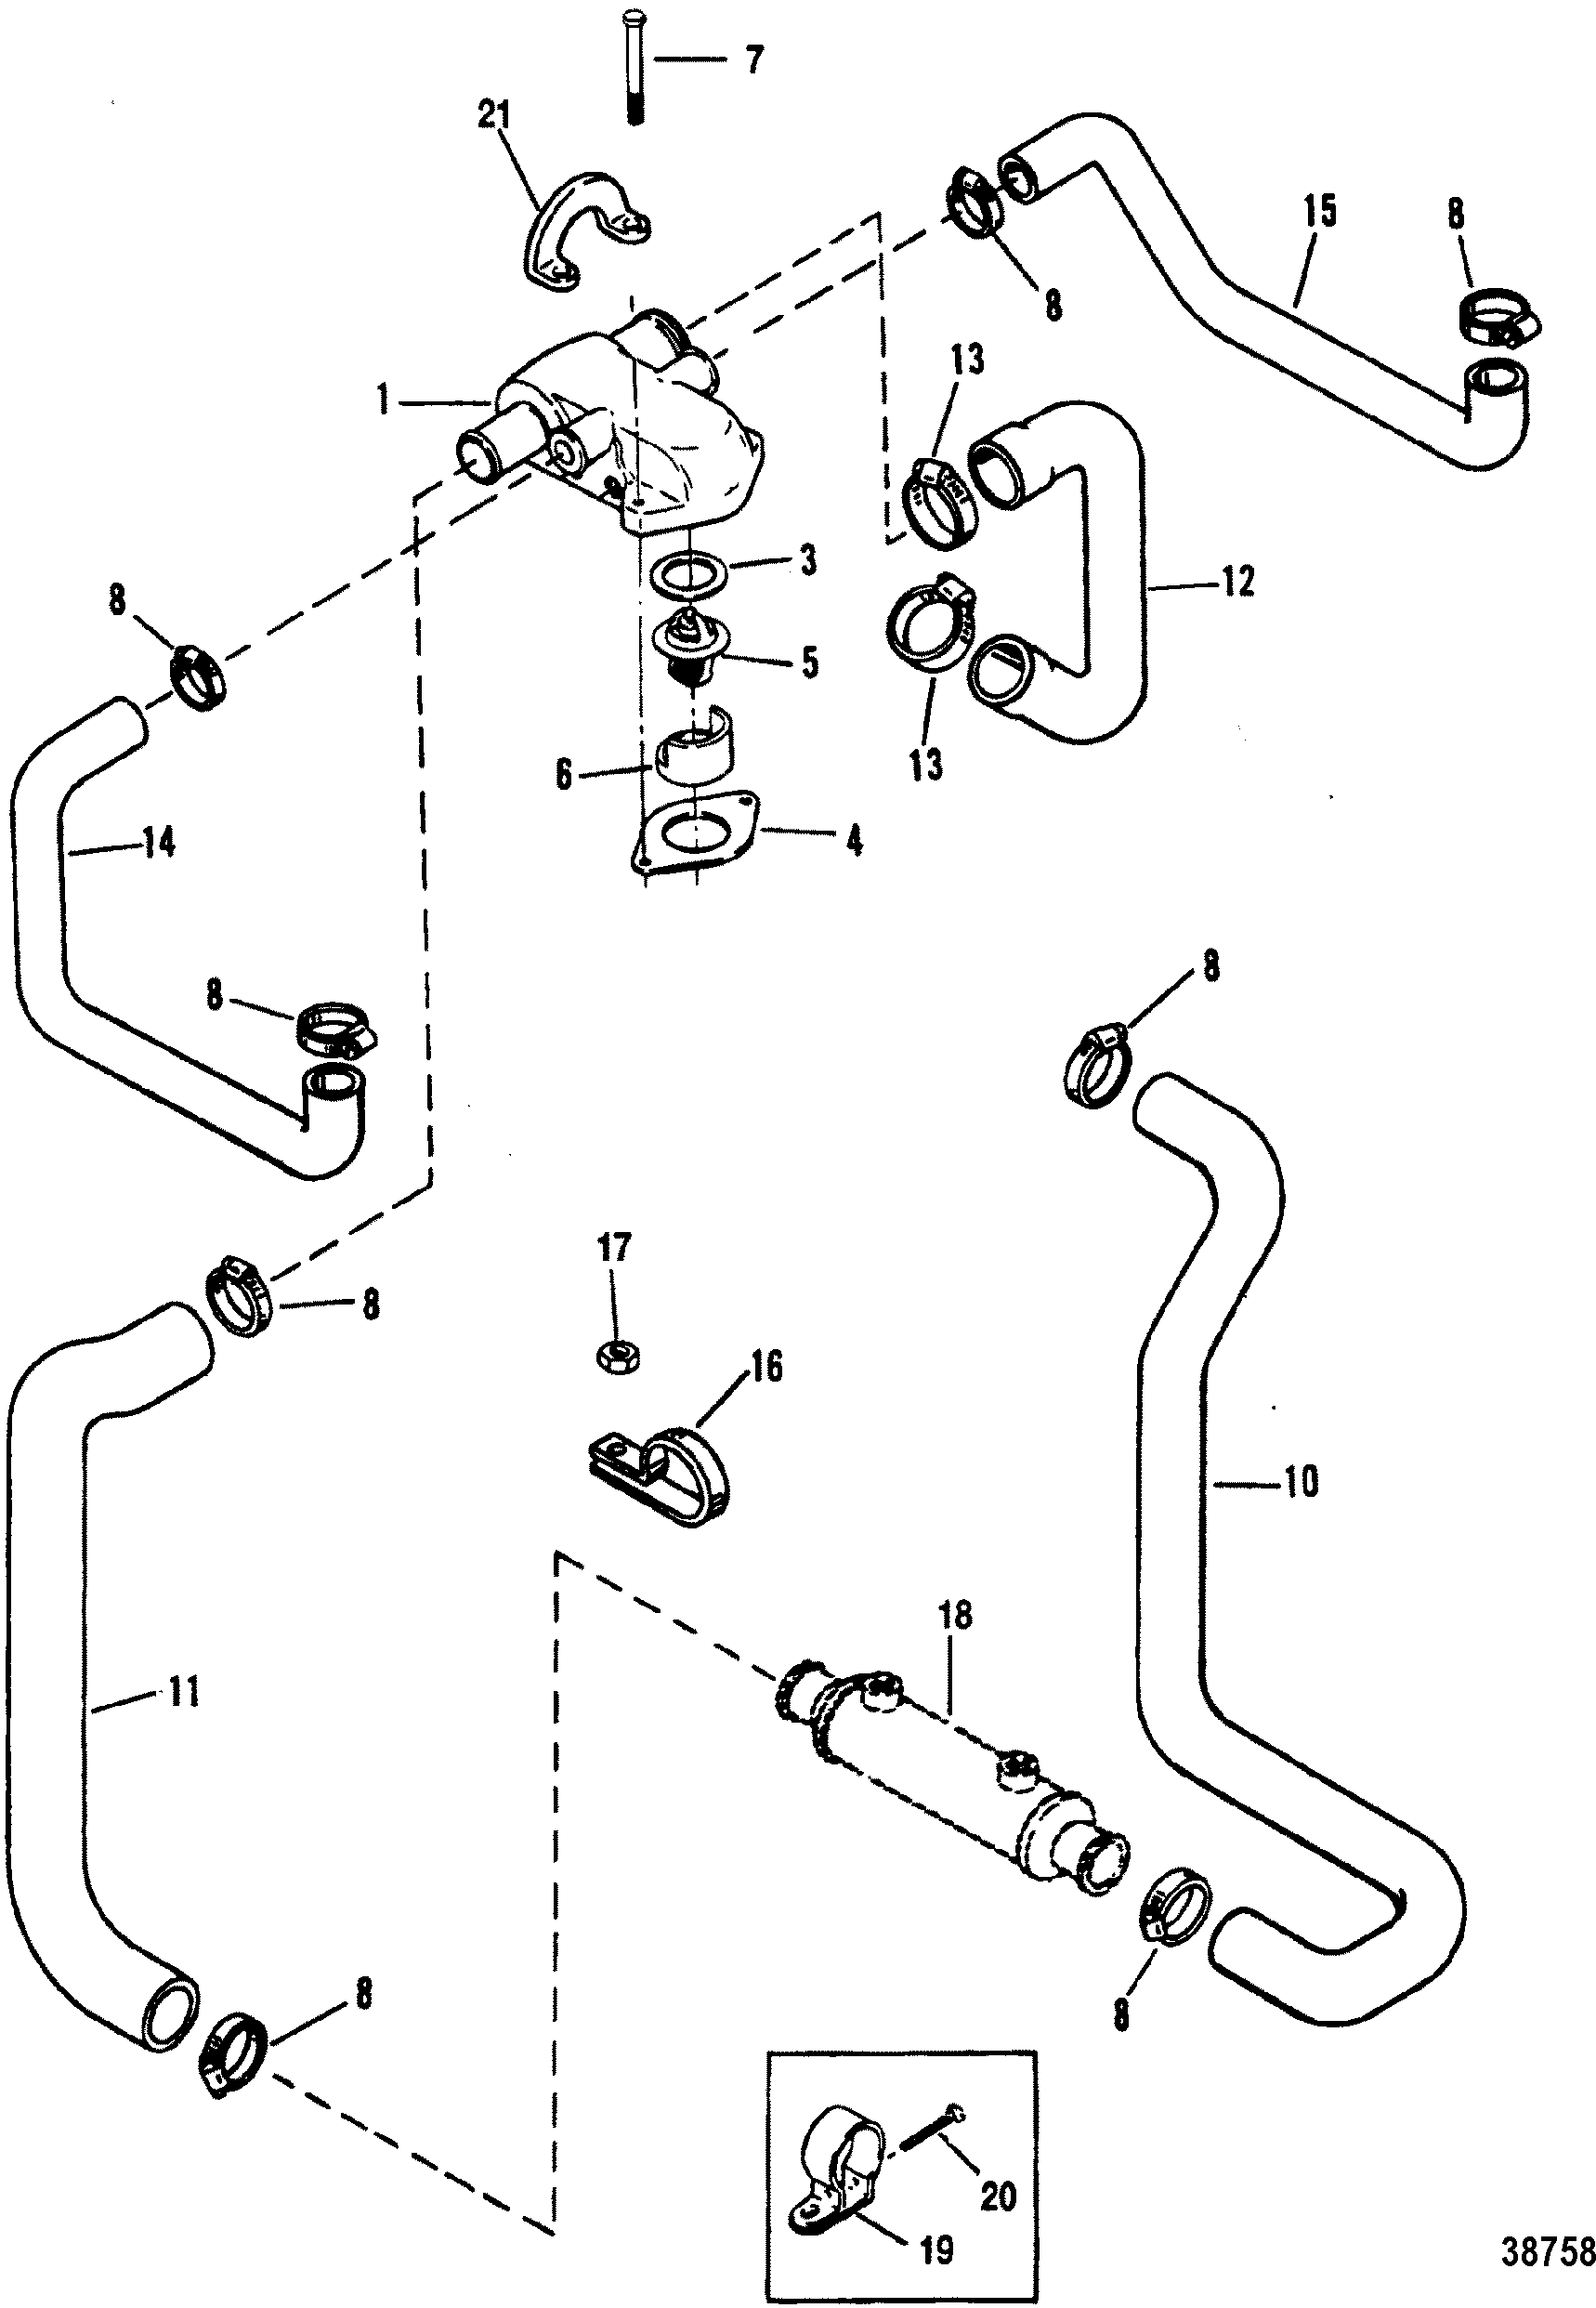 Standard Cooling System Design Ii For Mercruiser 4 3l 4